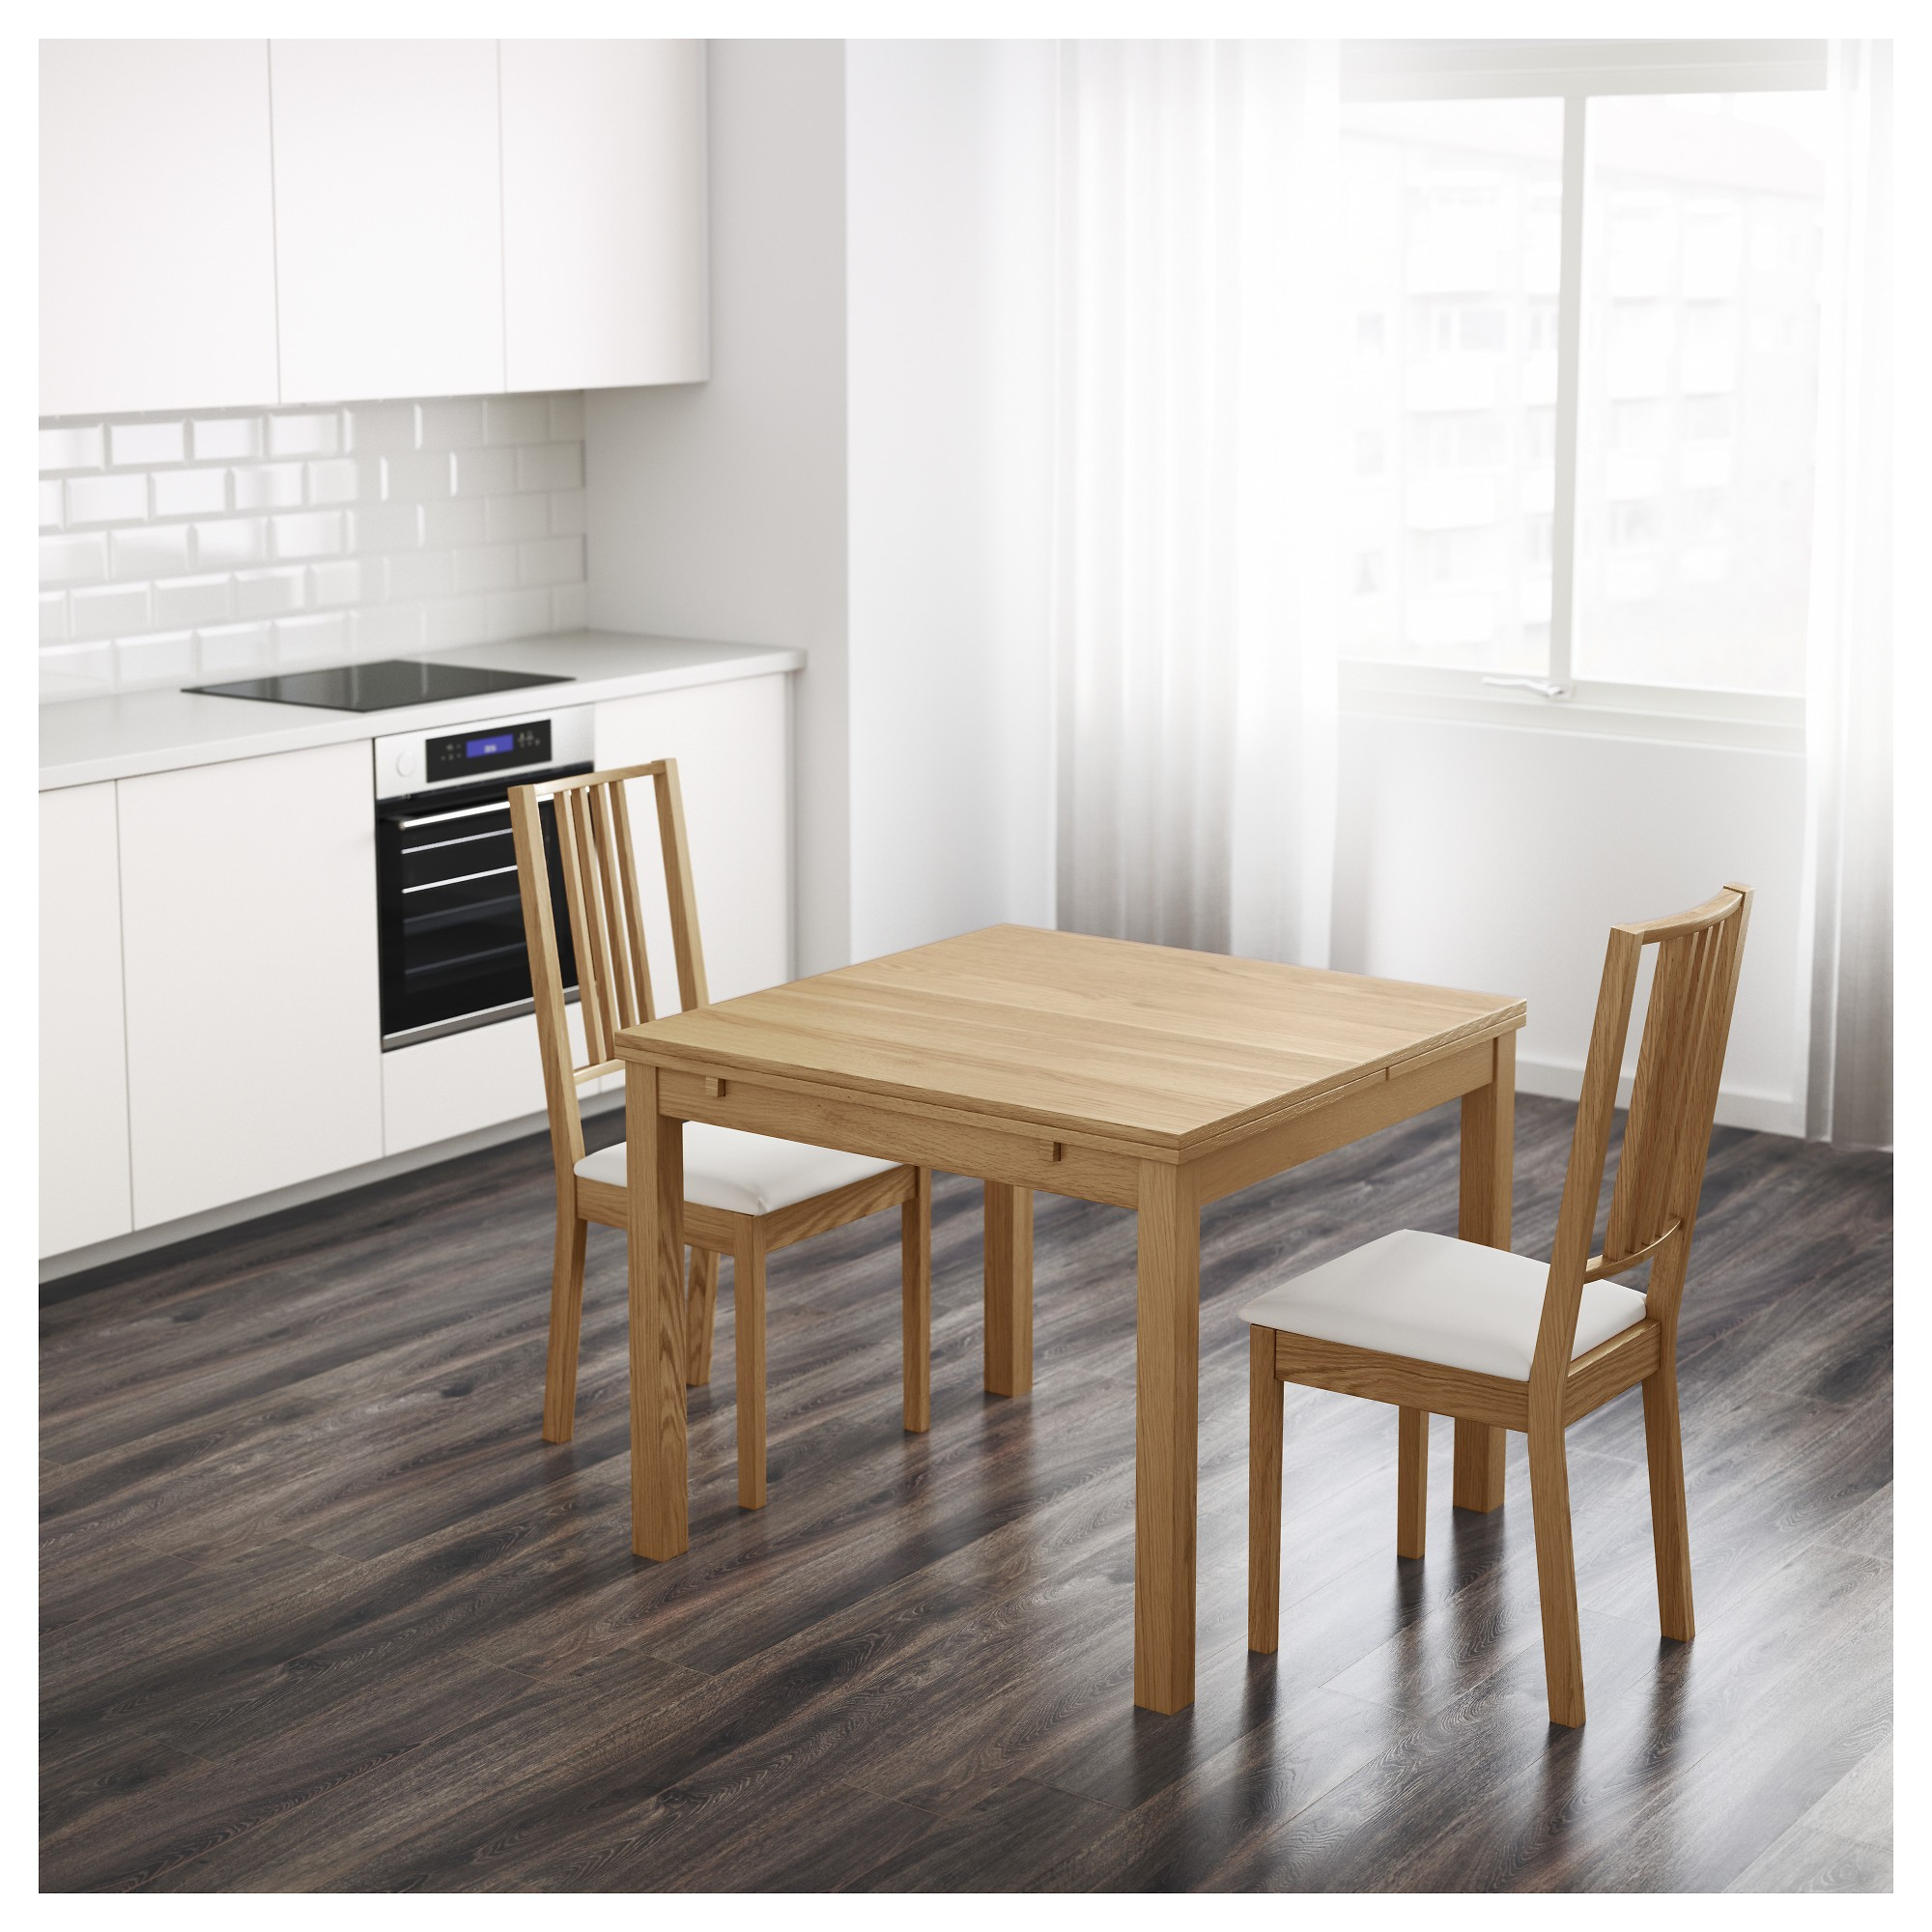 Table cuisine extensible maison design - Table cuisine extensible ...